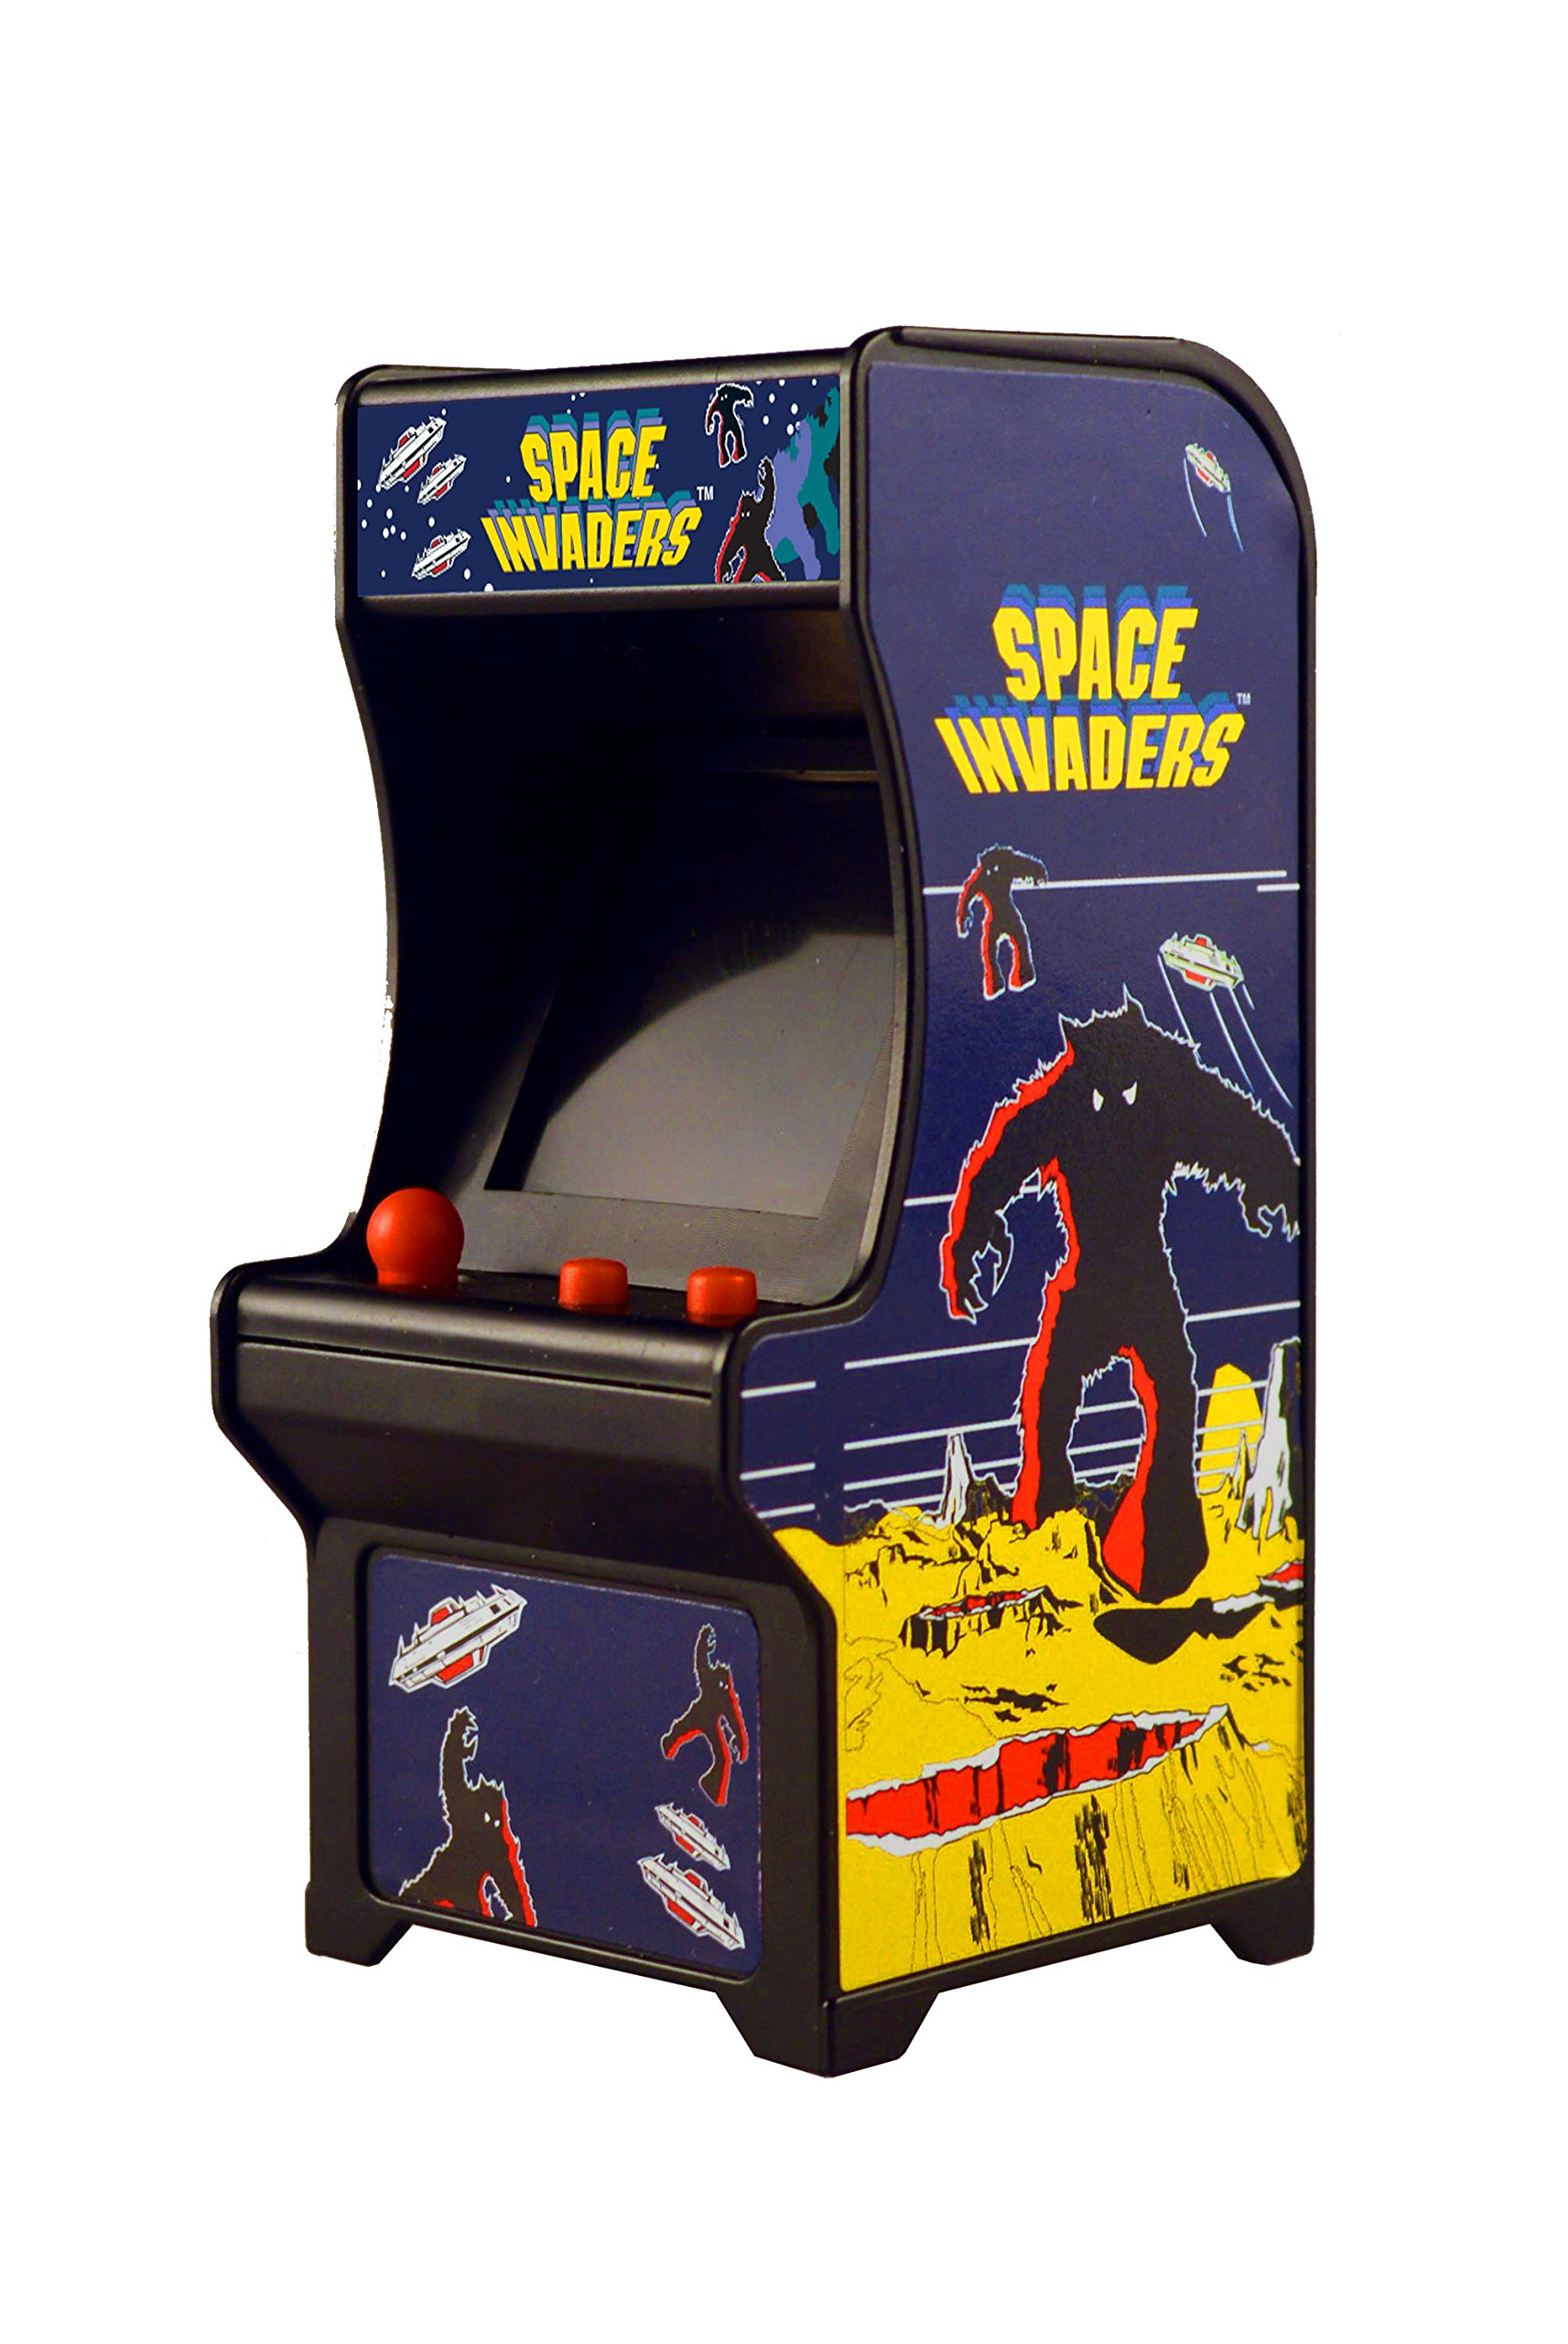 Tiny Arcade Space Invaders Miniature Arcade Game ...